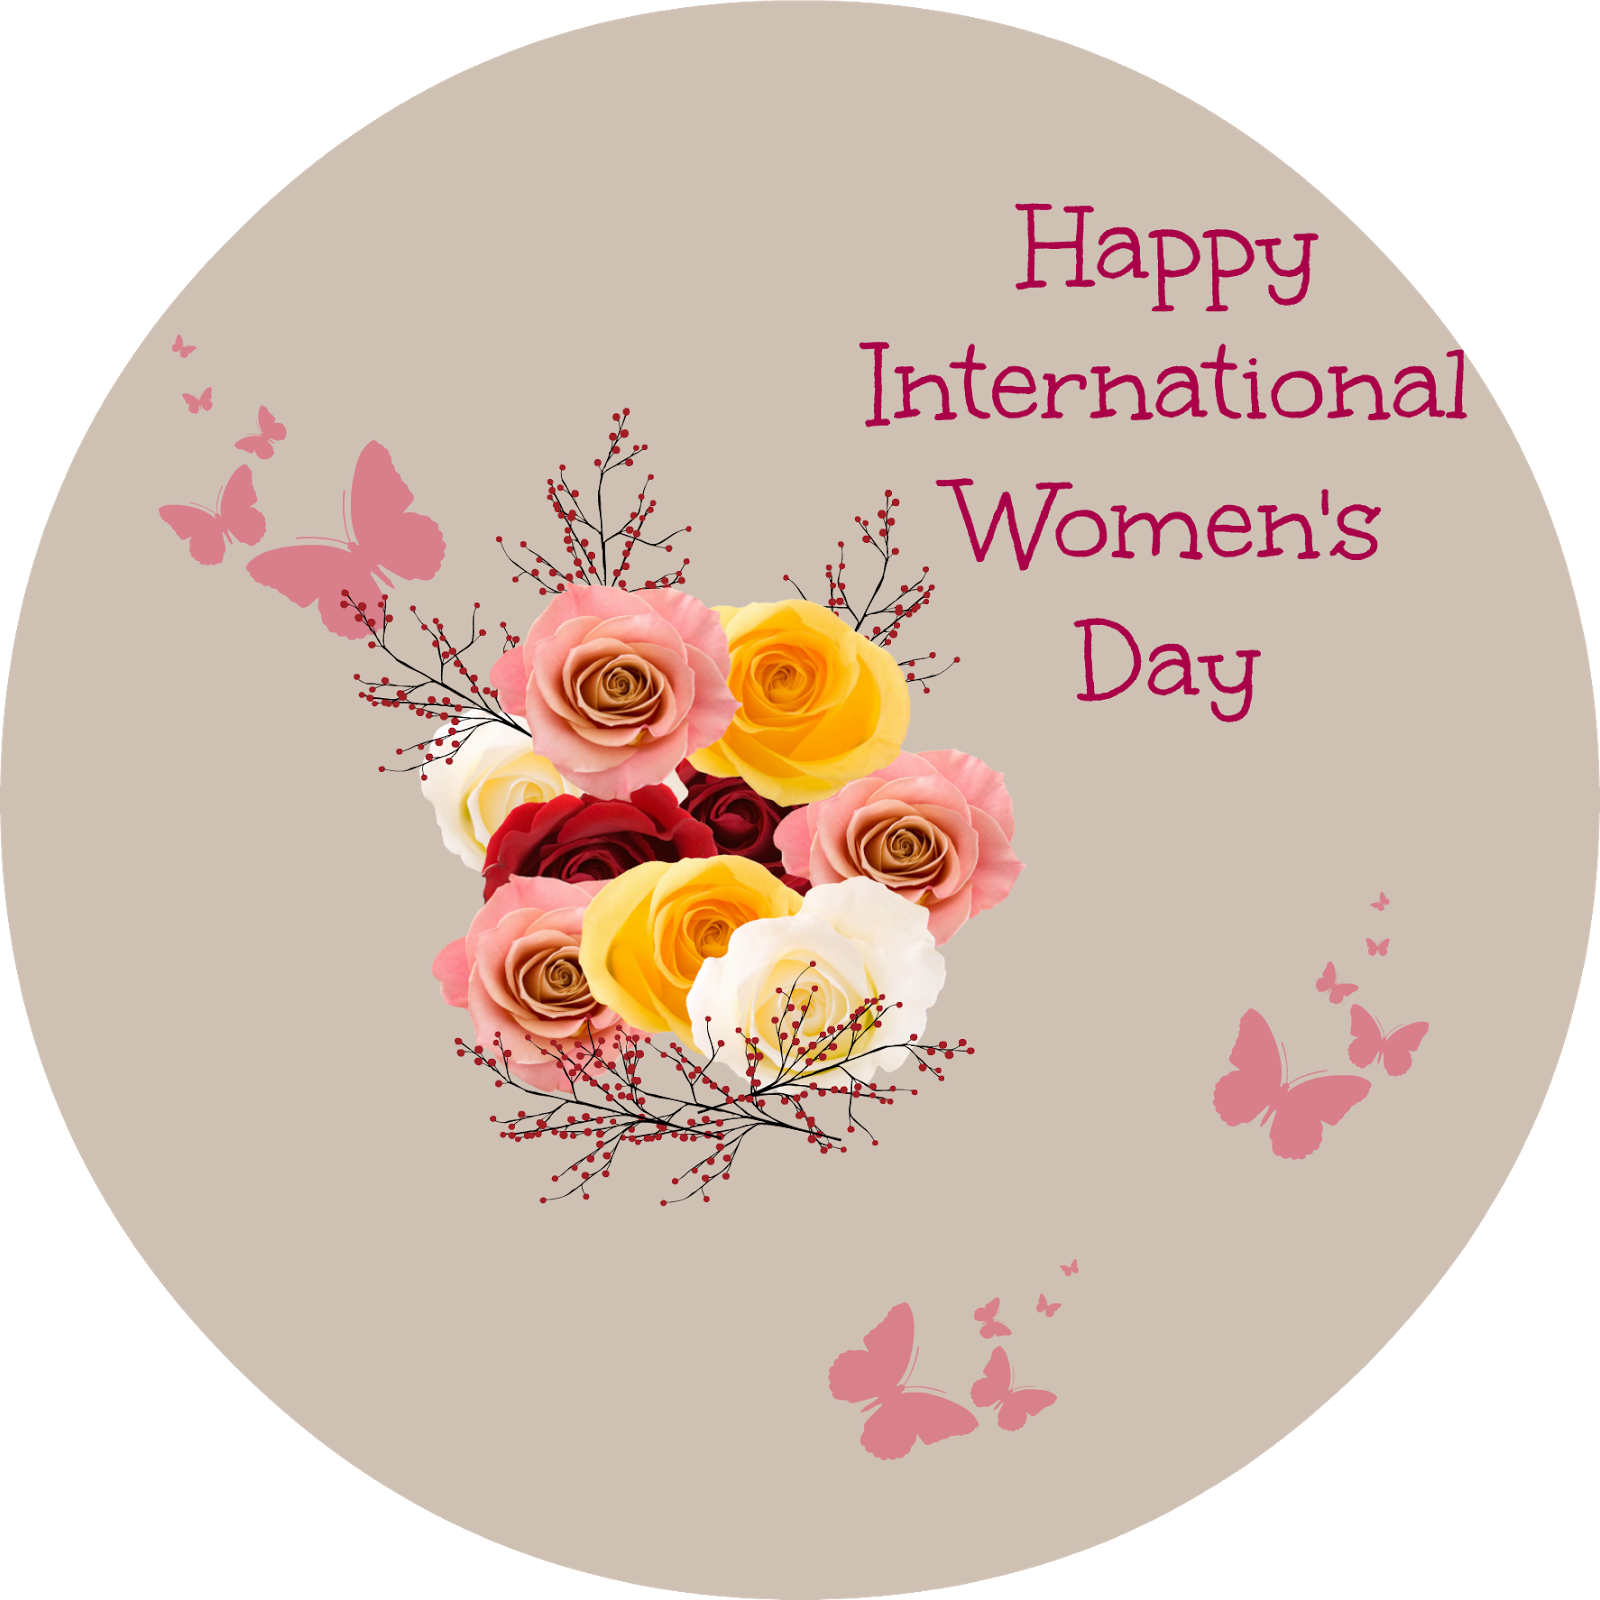 Happy International Women's Day image